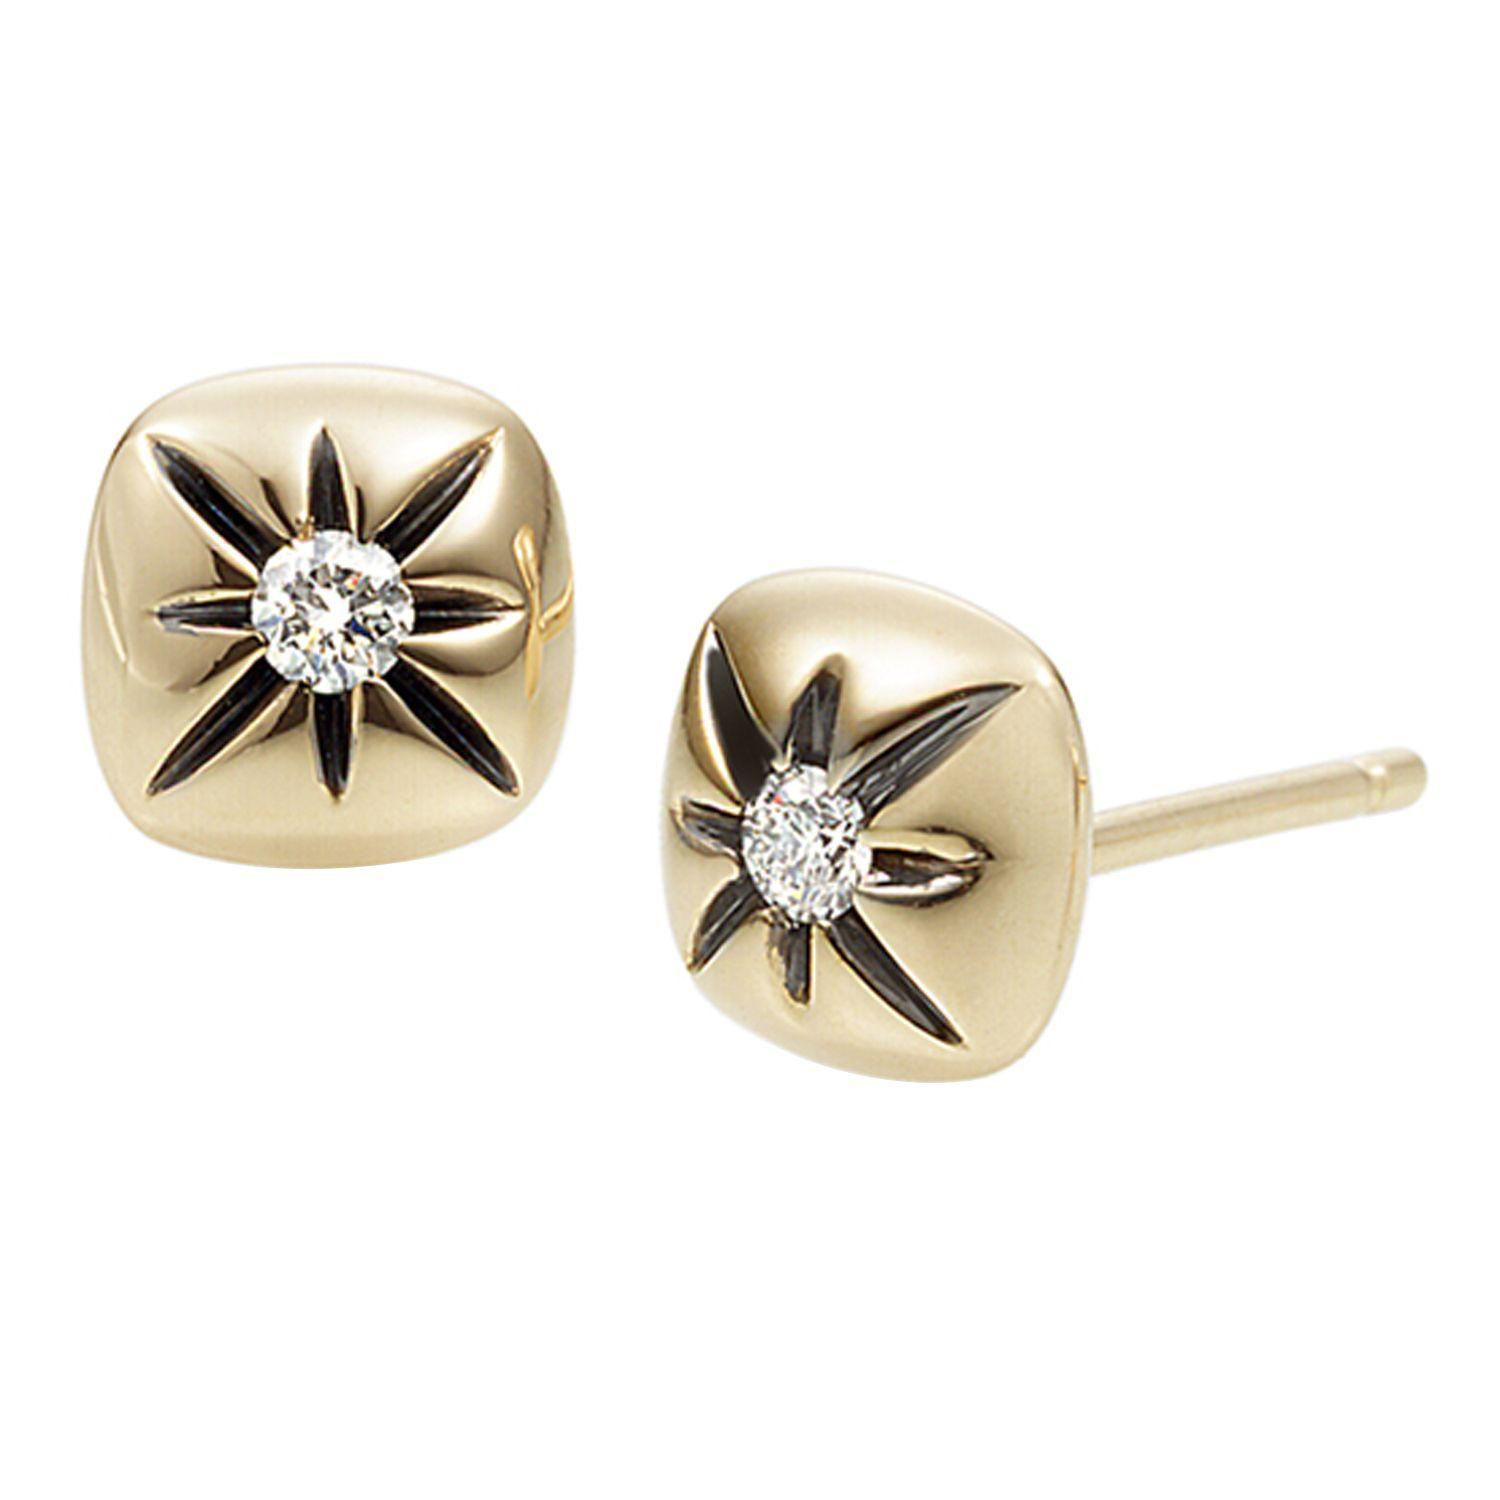 Lyst Jewelista Diamond Cushion Stud Earrings In 14k Gold in Metallic